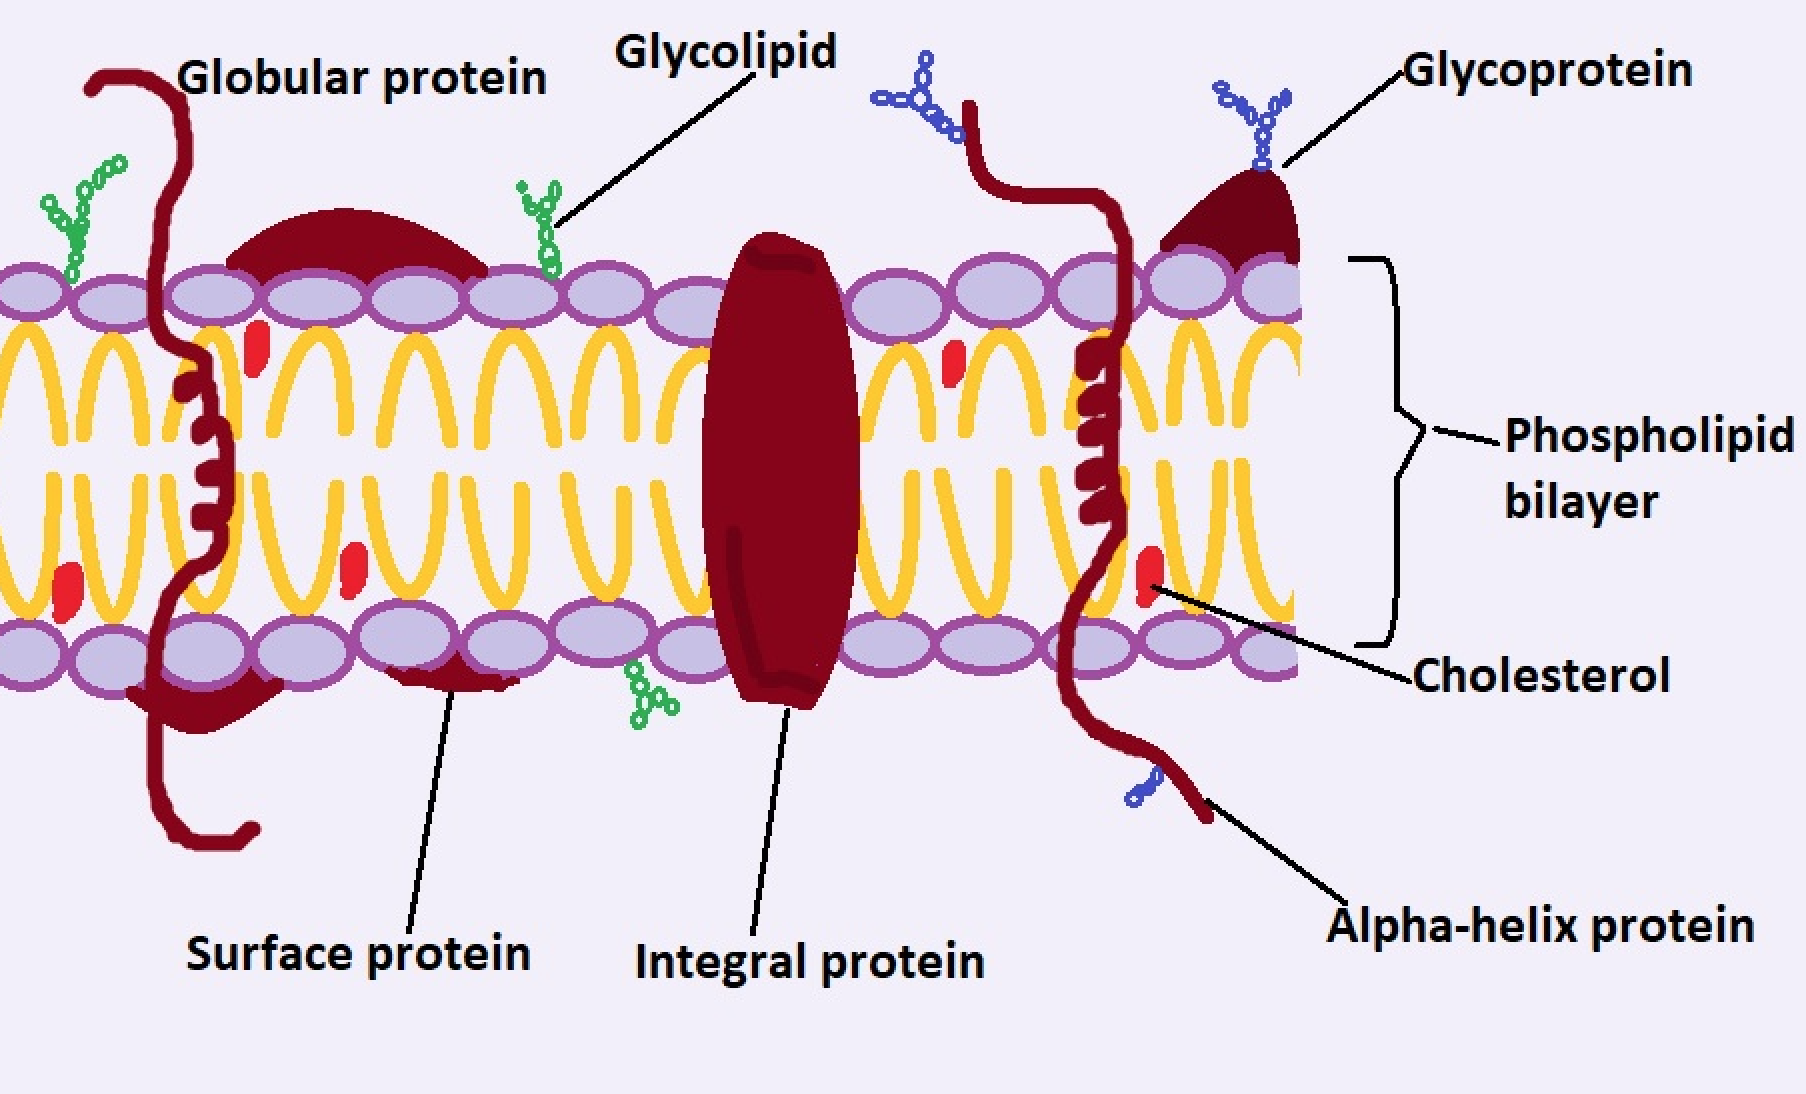 section of the cell membrane. Credit: MicroscopeMaster.com